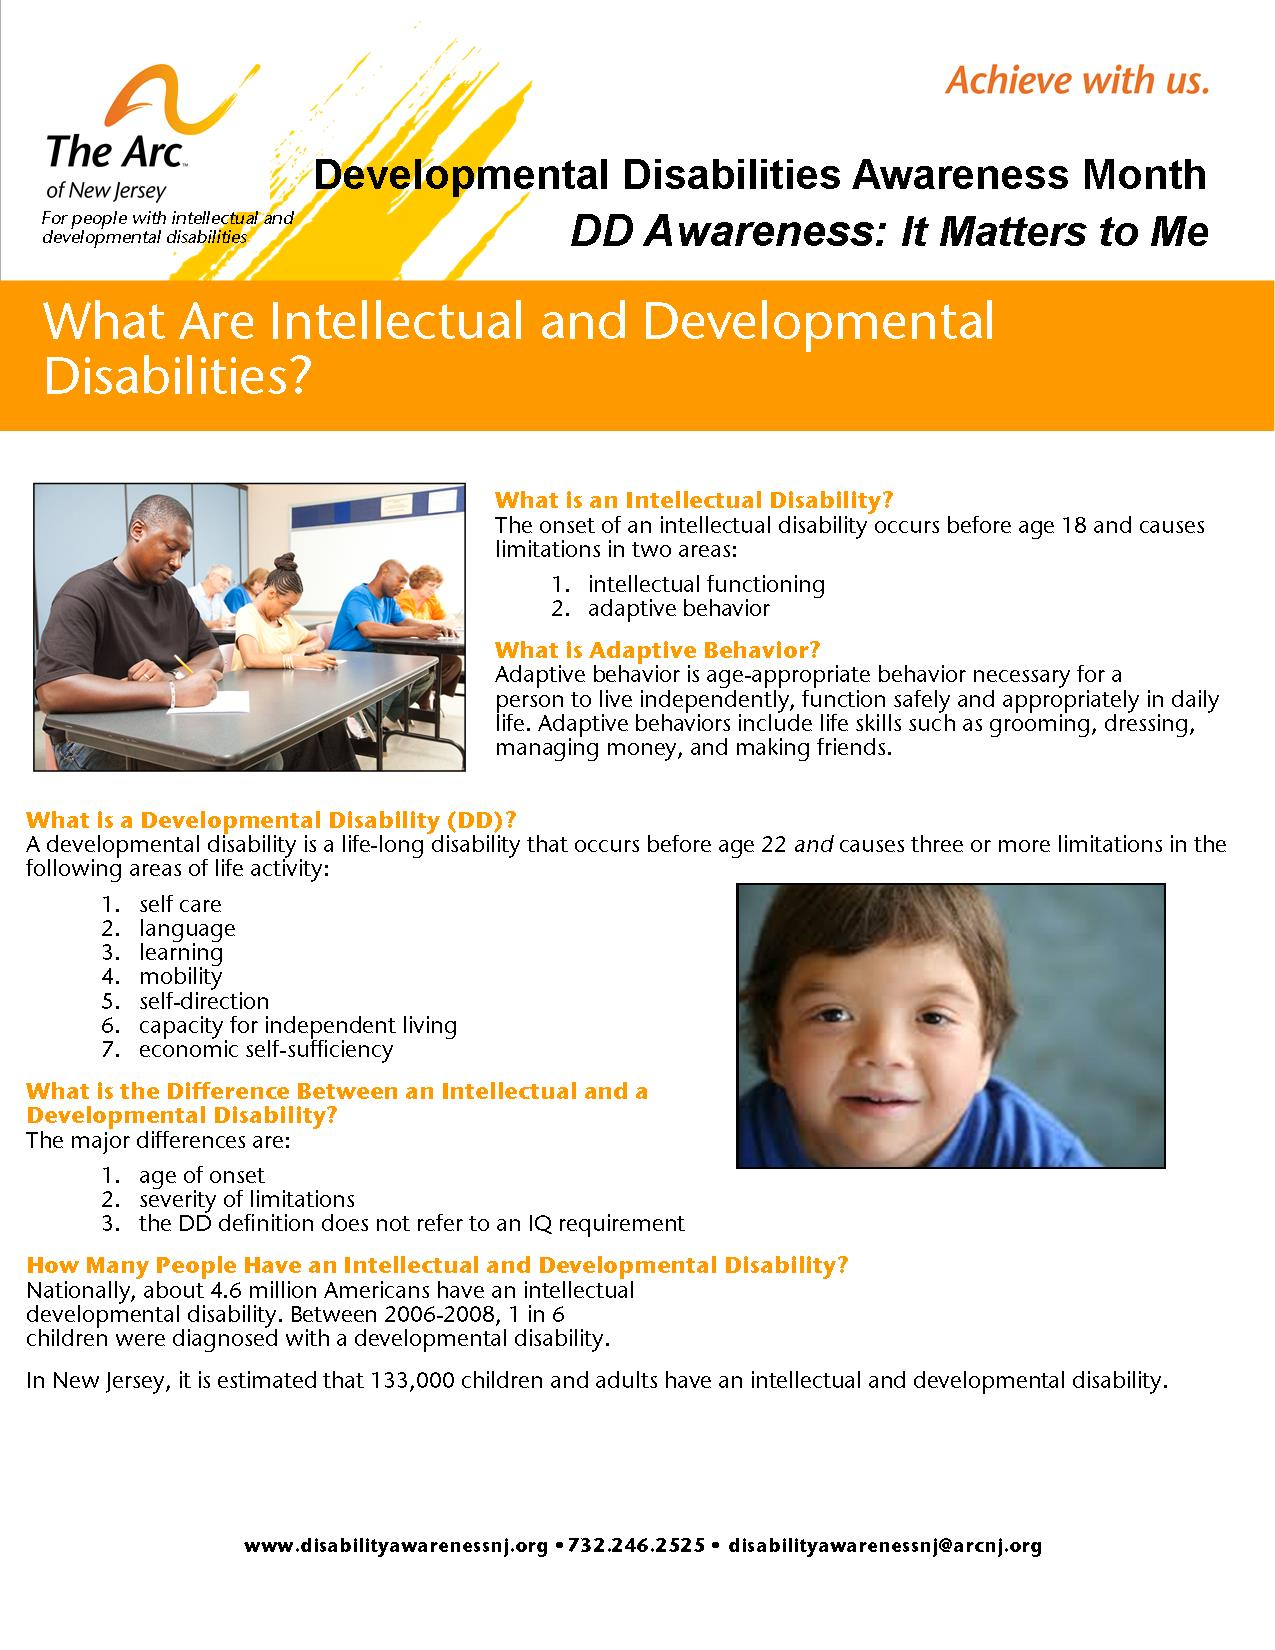 What is an Intellectual or Developmental Disability?